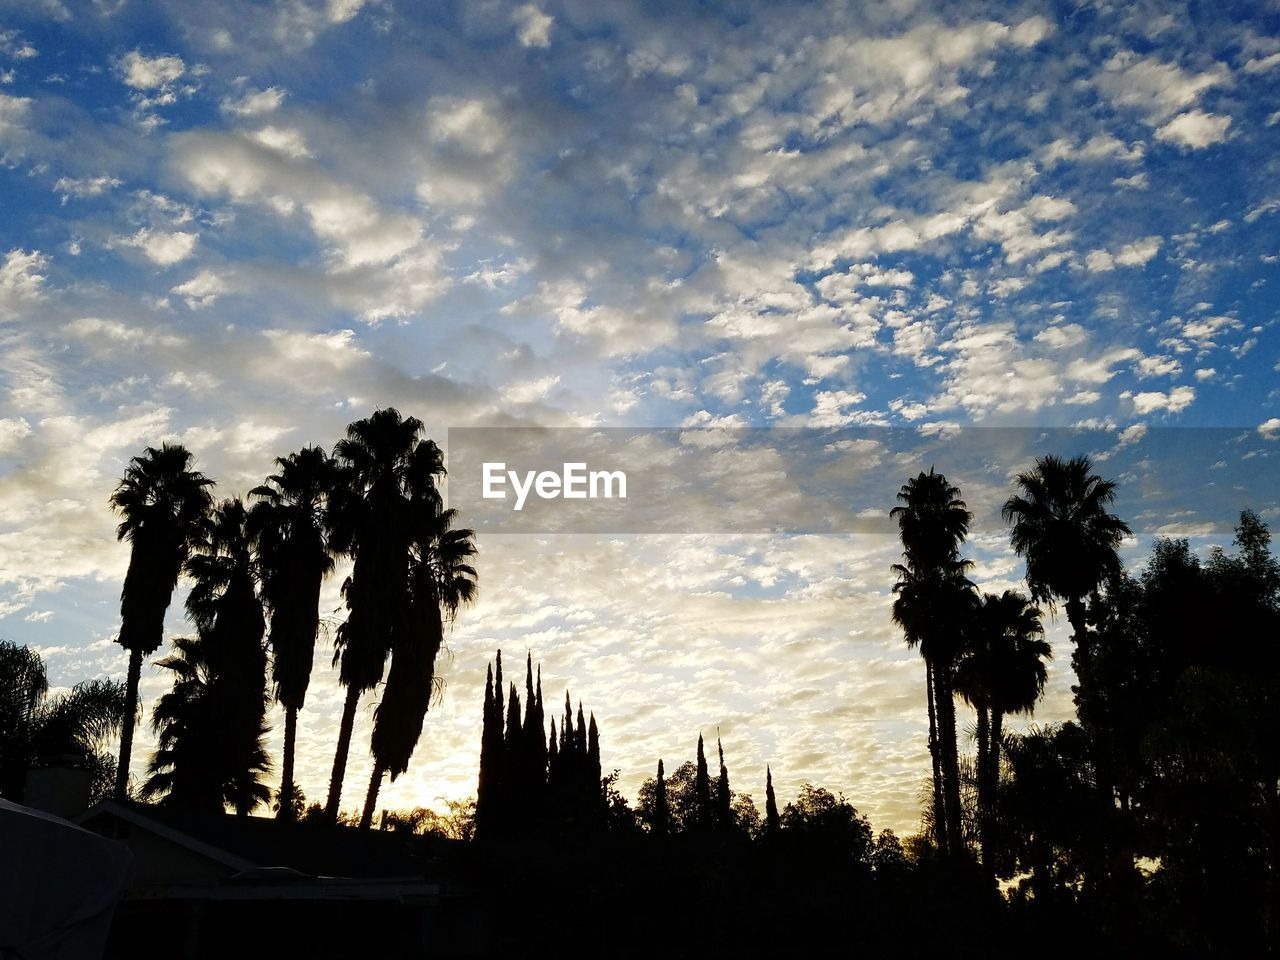 tree, sky, silhouette, beauty in nature, cloud - sky, no people, palm tree, growth, nature, low angle view, sunset, outdoors, tranquility, tranquil scene, scenics, day